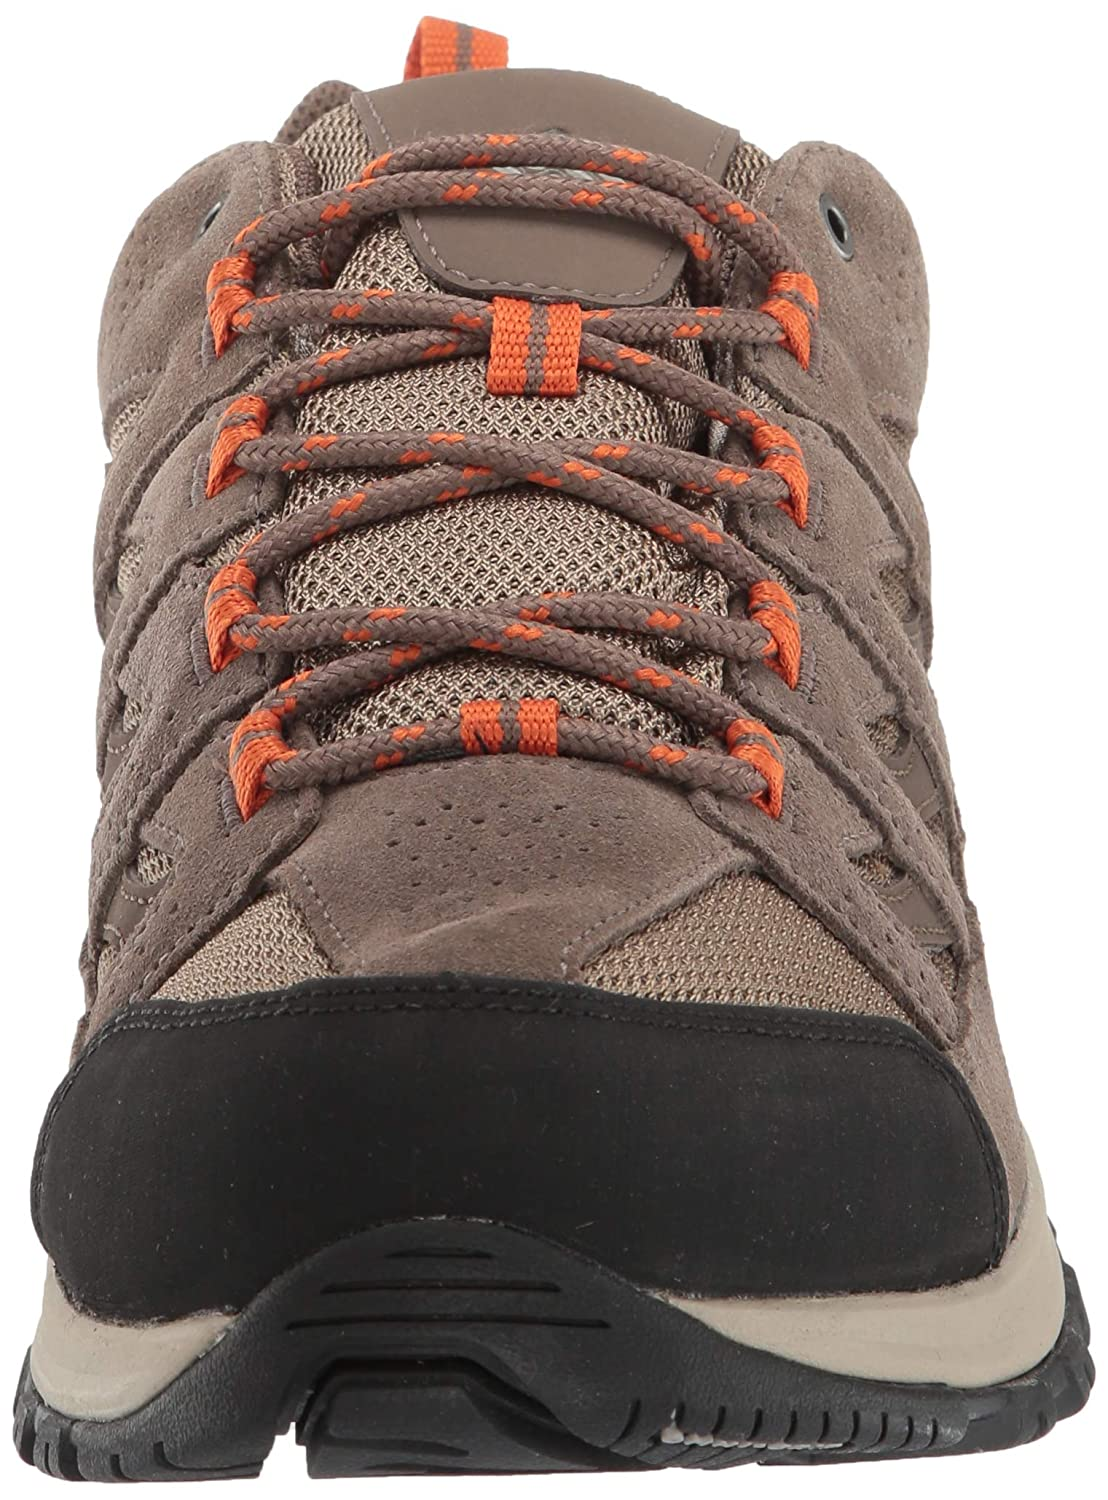 High-Traction Grip Columbia Mens